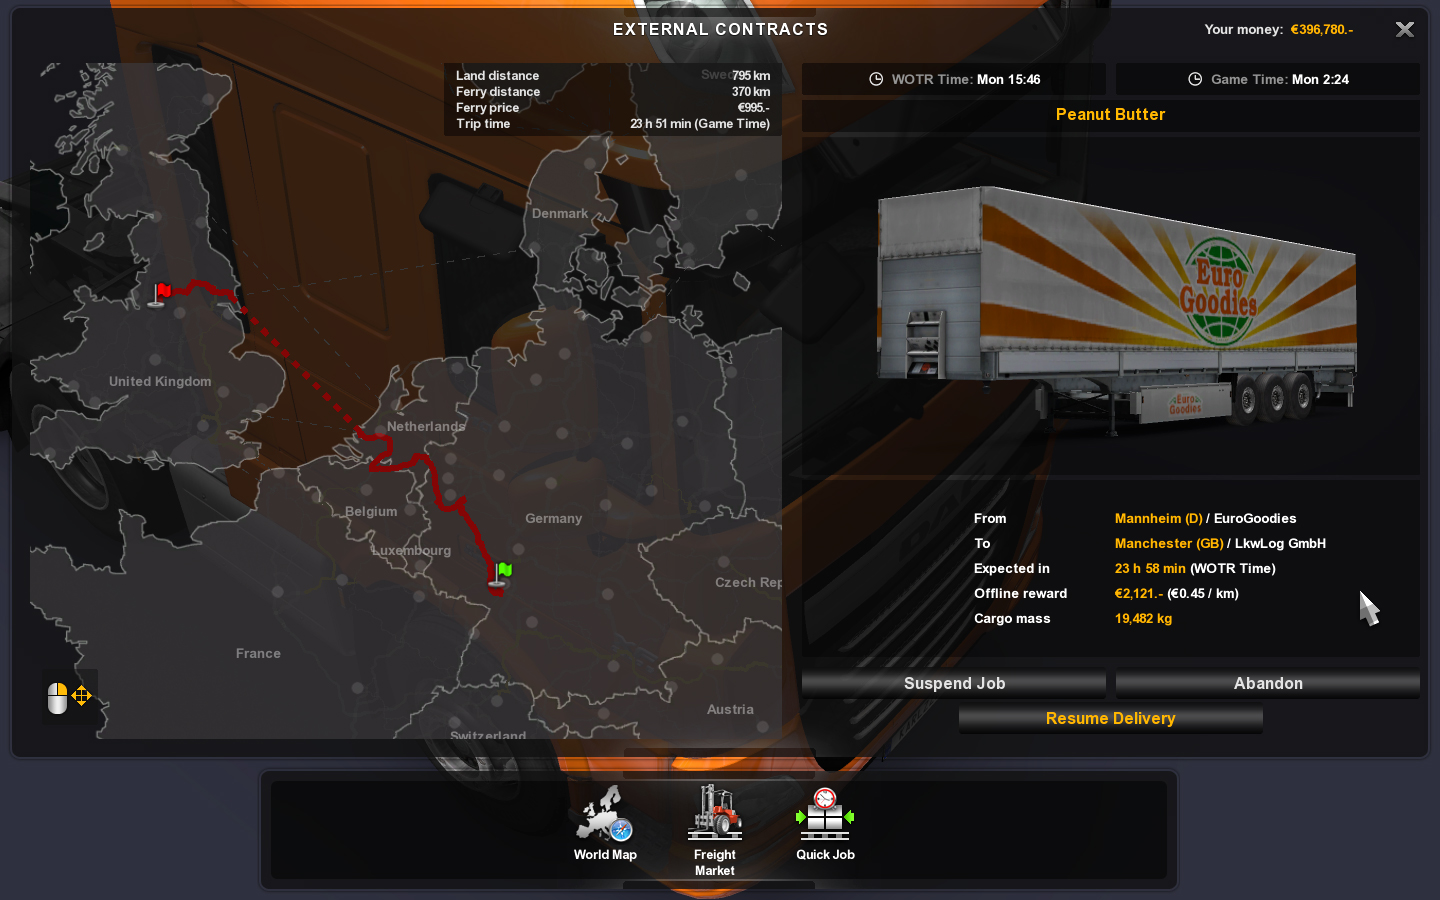 Ets2-blog_20151027_Wot_contracts_ingame.jpg